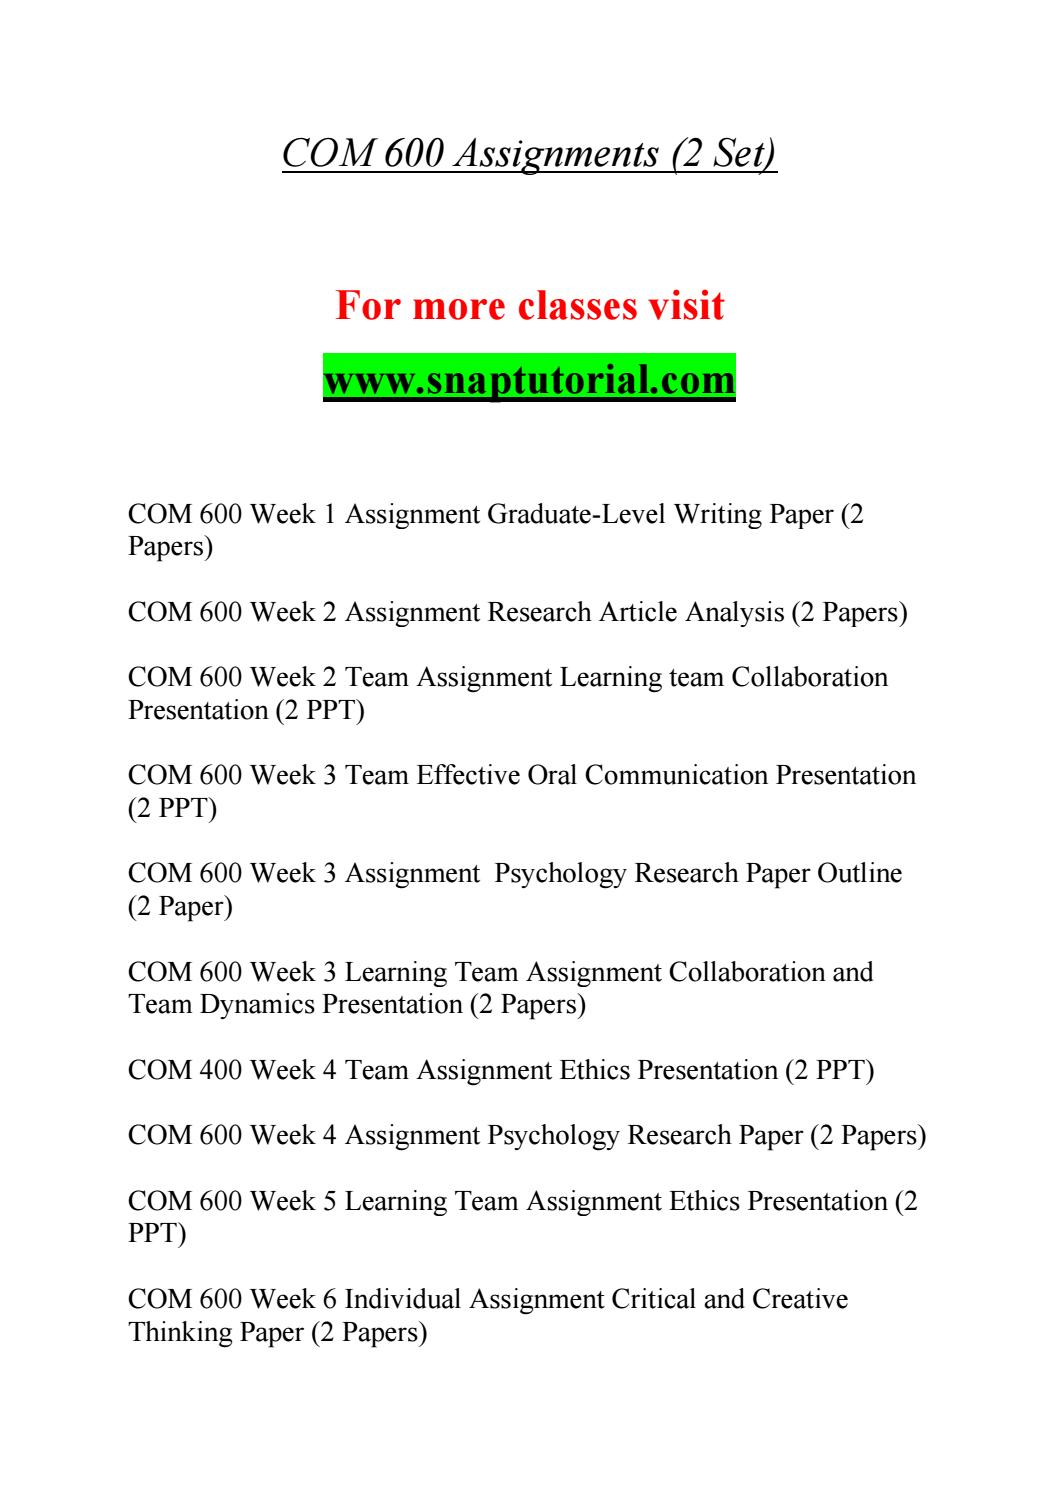 010 Research Paper Psychology Outline Com Page 1 Striking 600 Com/600 Full